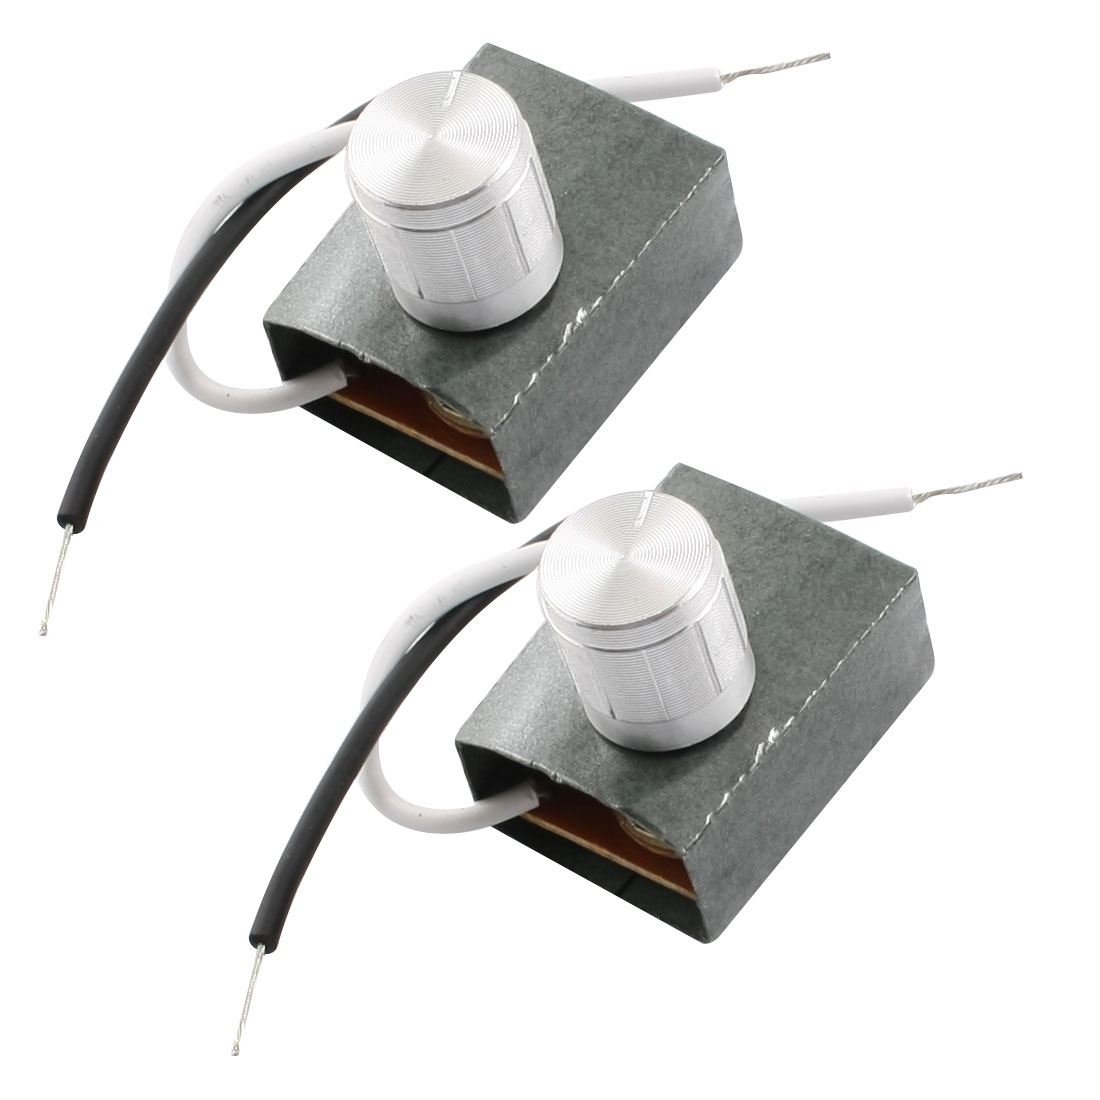 2pcs 3A 220V Rotary Knob Lamp Dimmer Control Dimming Switch Silver Tone